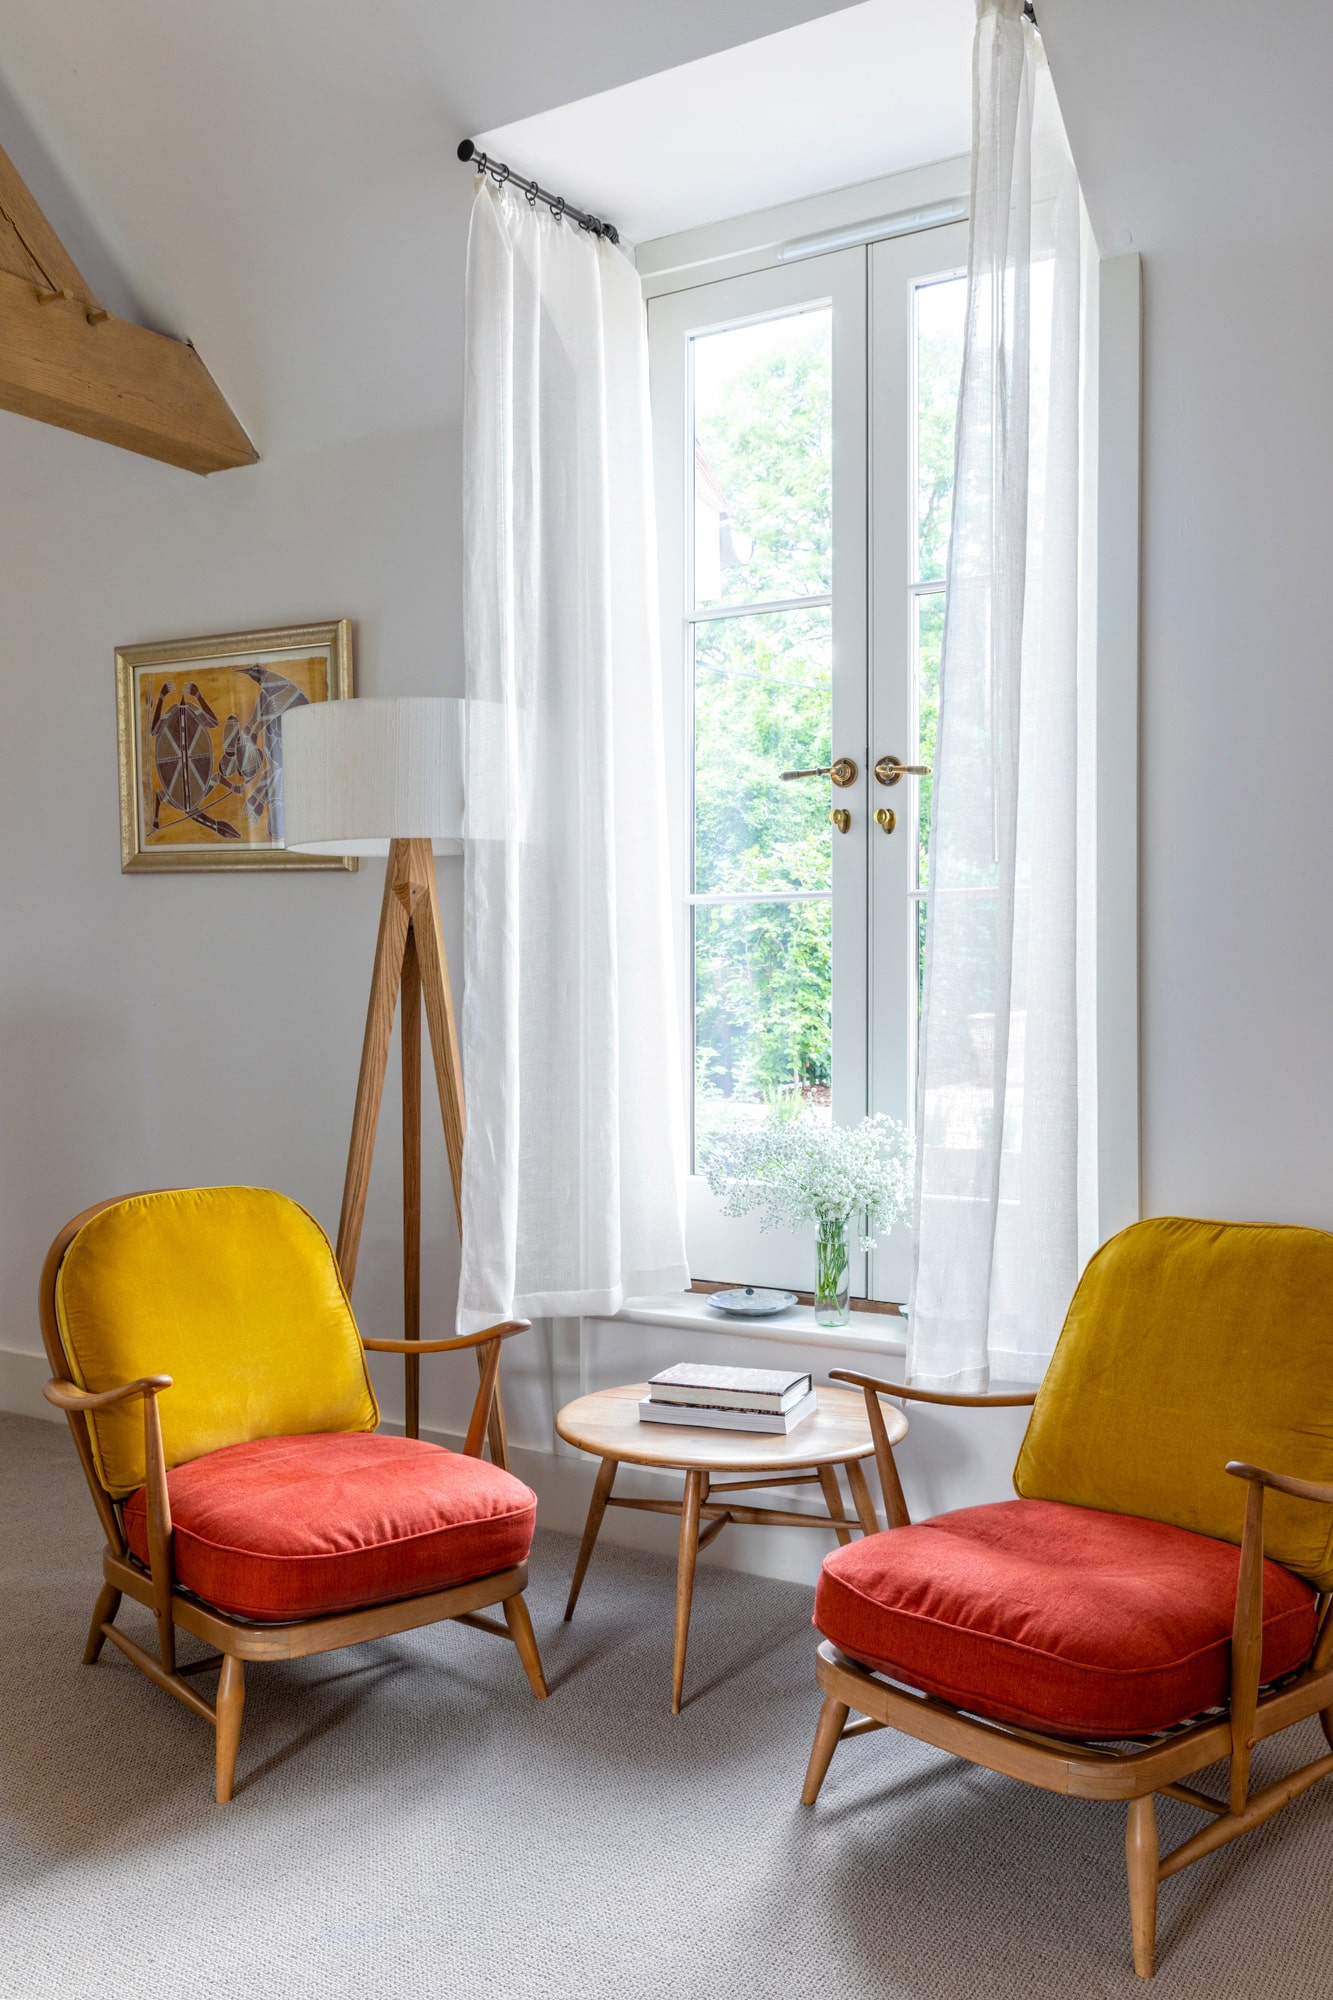 Interior design photo: two yellow and red armchairs in front of the window in a farm house